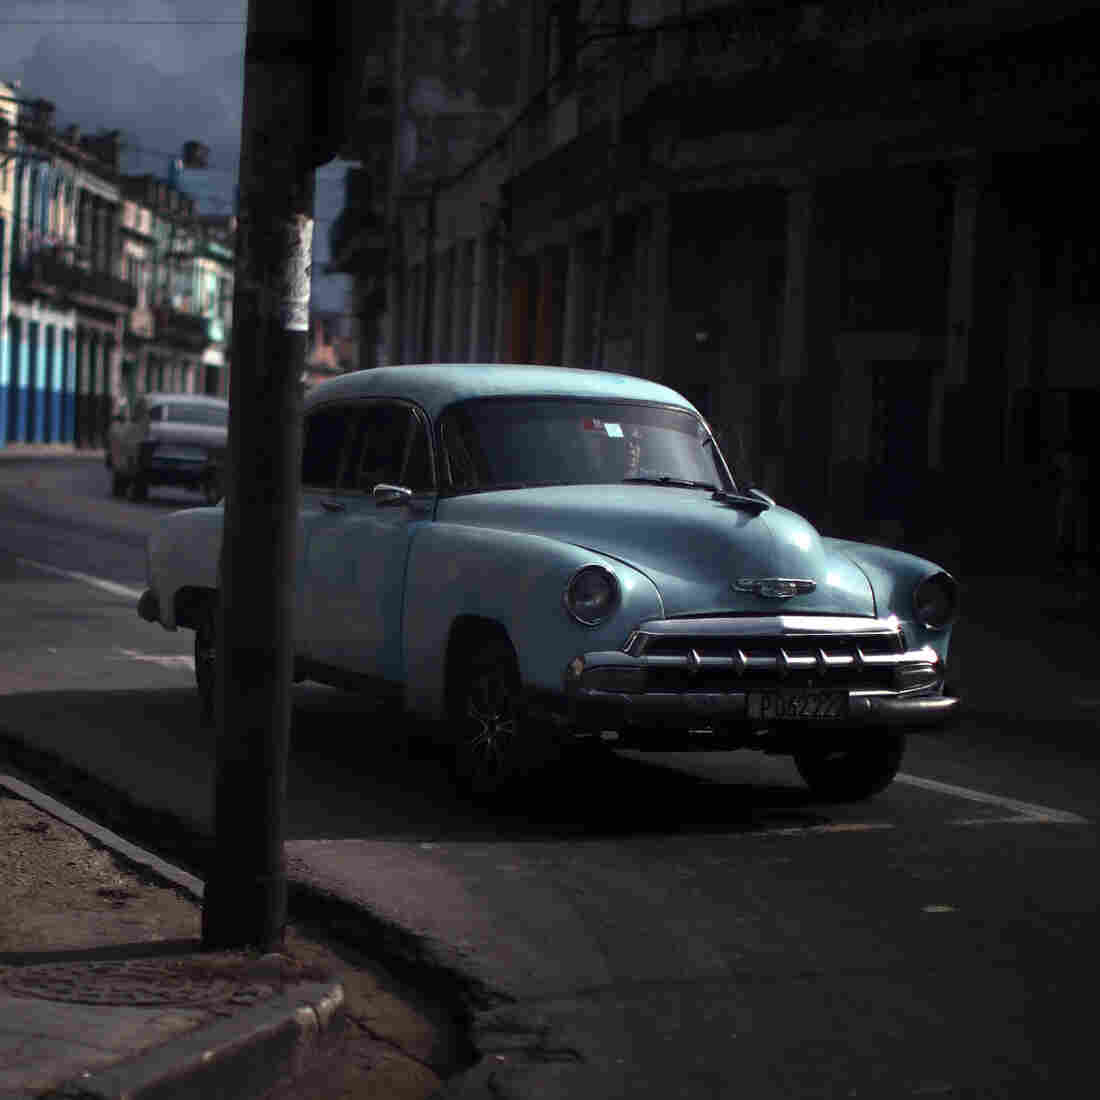 Go To Cuba, We Said, But NO Car Pictures.